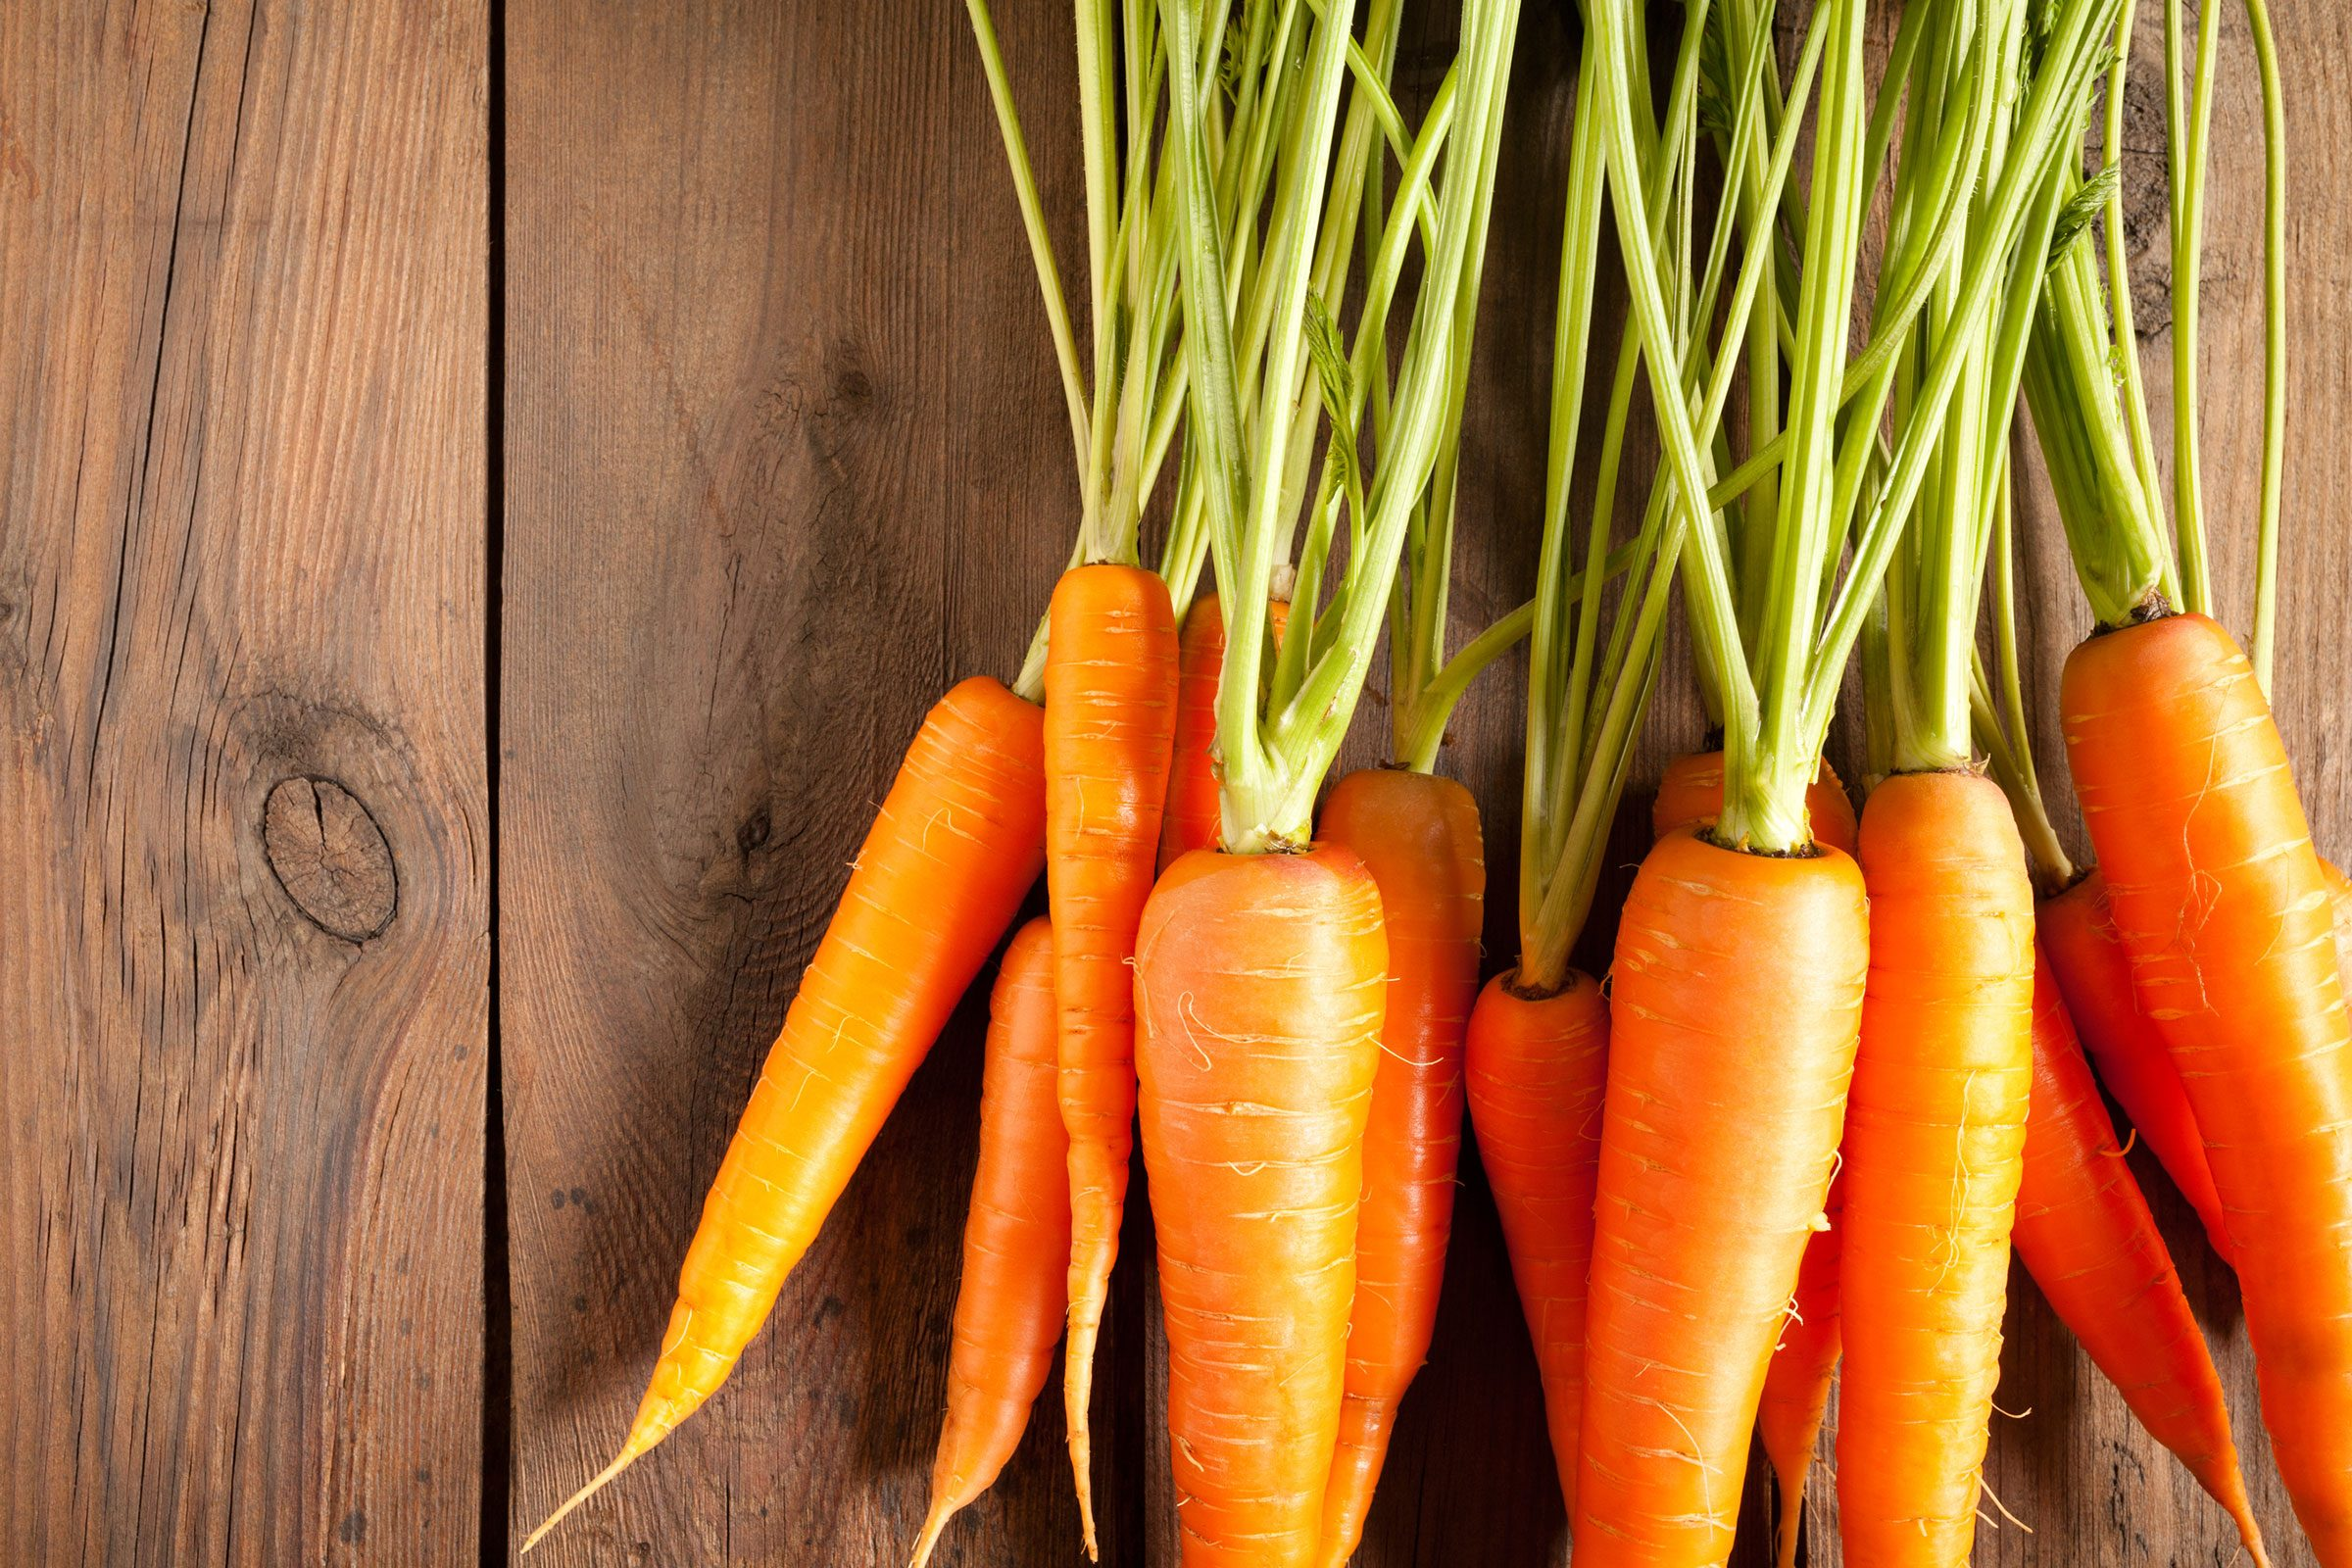 Carrots On A Keto Diet (Carbs In Carrots, Nutrition Facts, GI And Impact On Health)